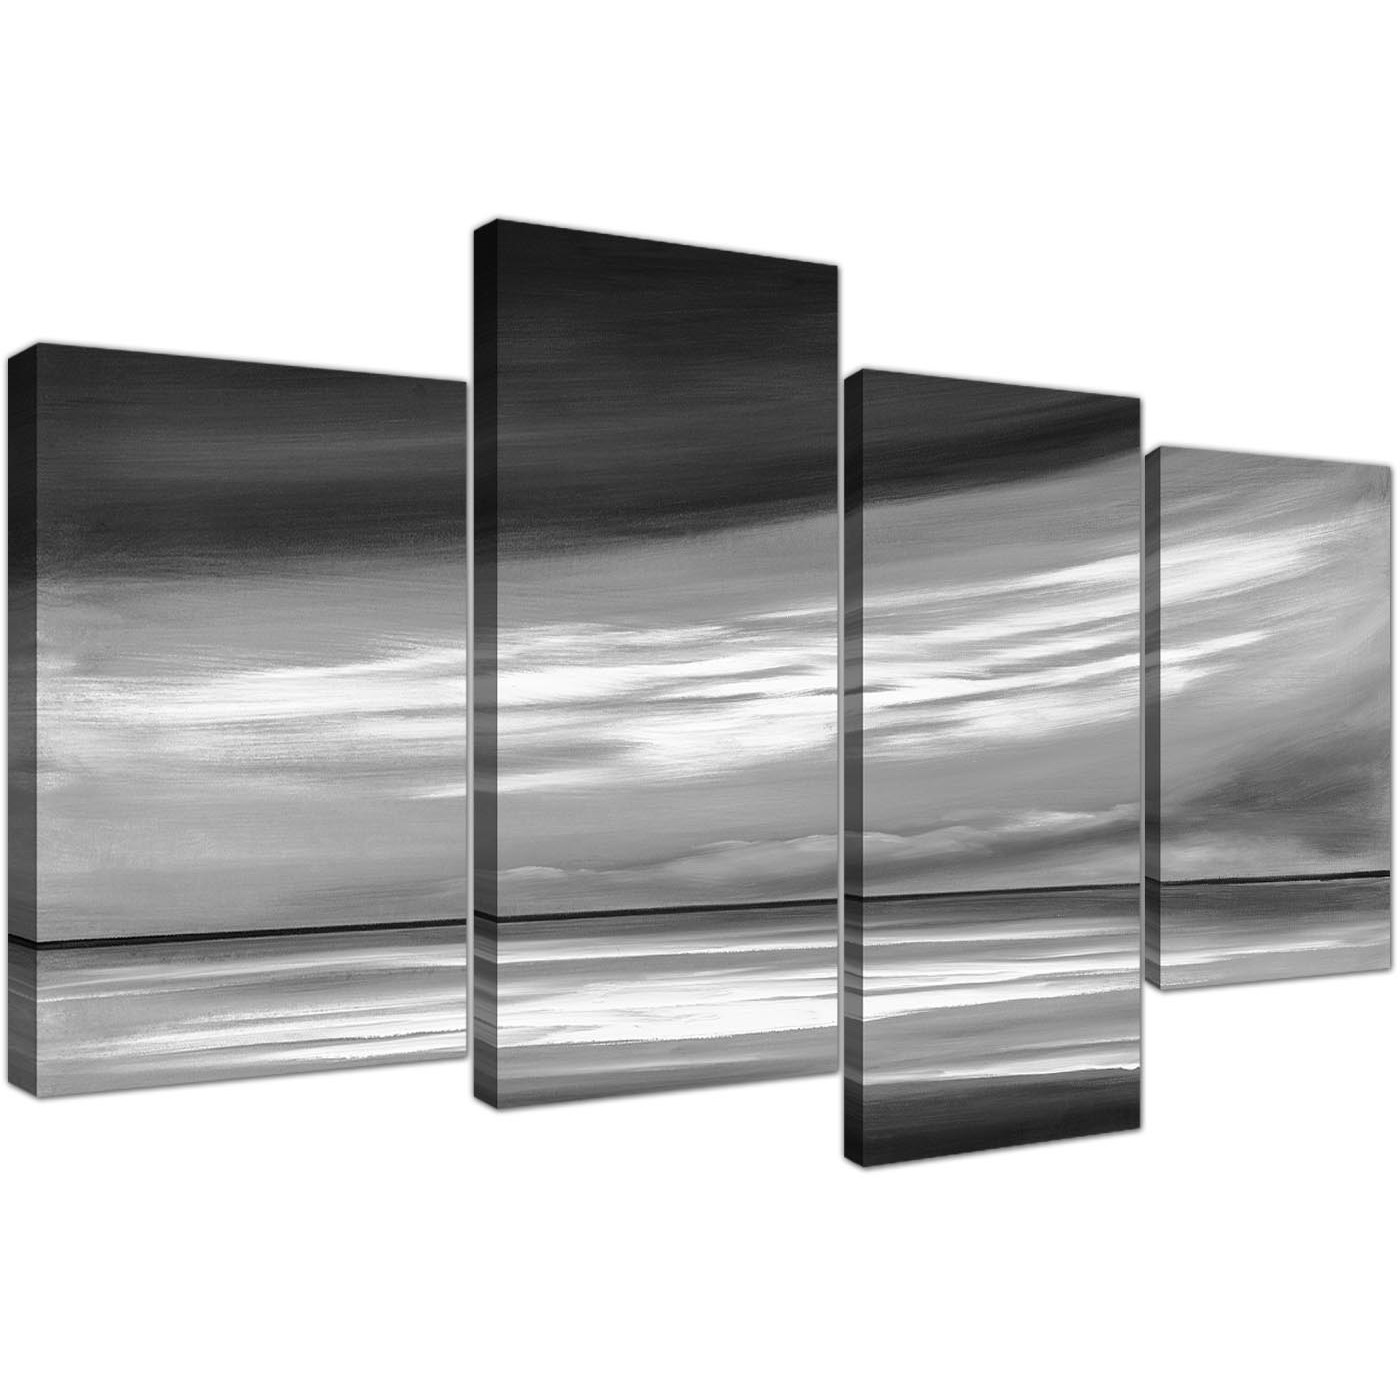 Black White Grey Abstract Beach Scene Abstract Canvas 4 Panel 130cm 4272